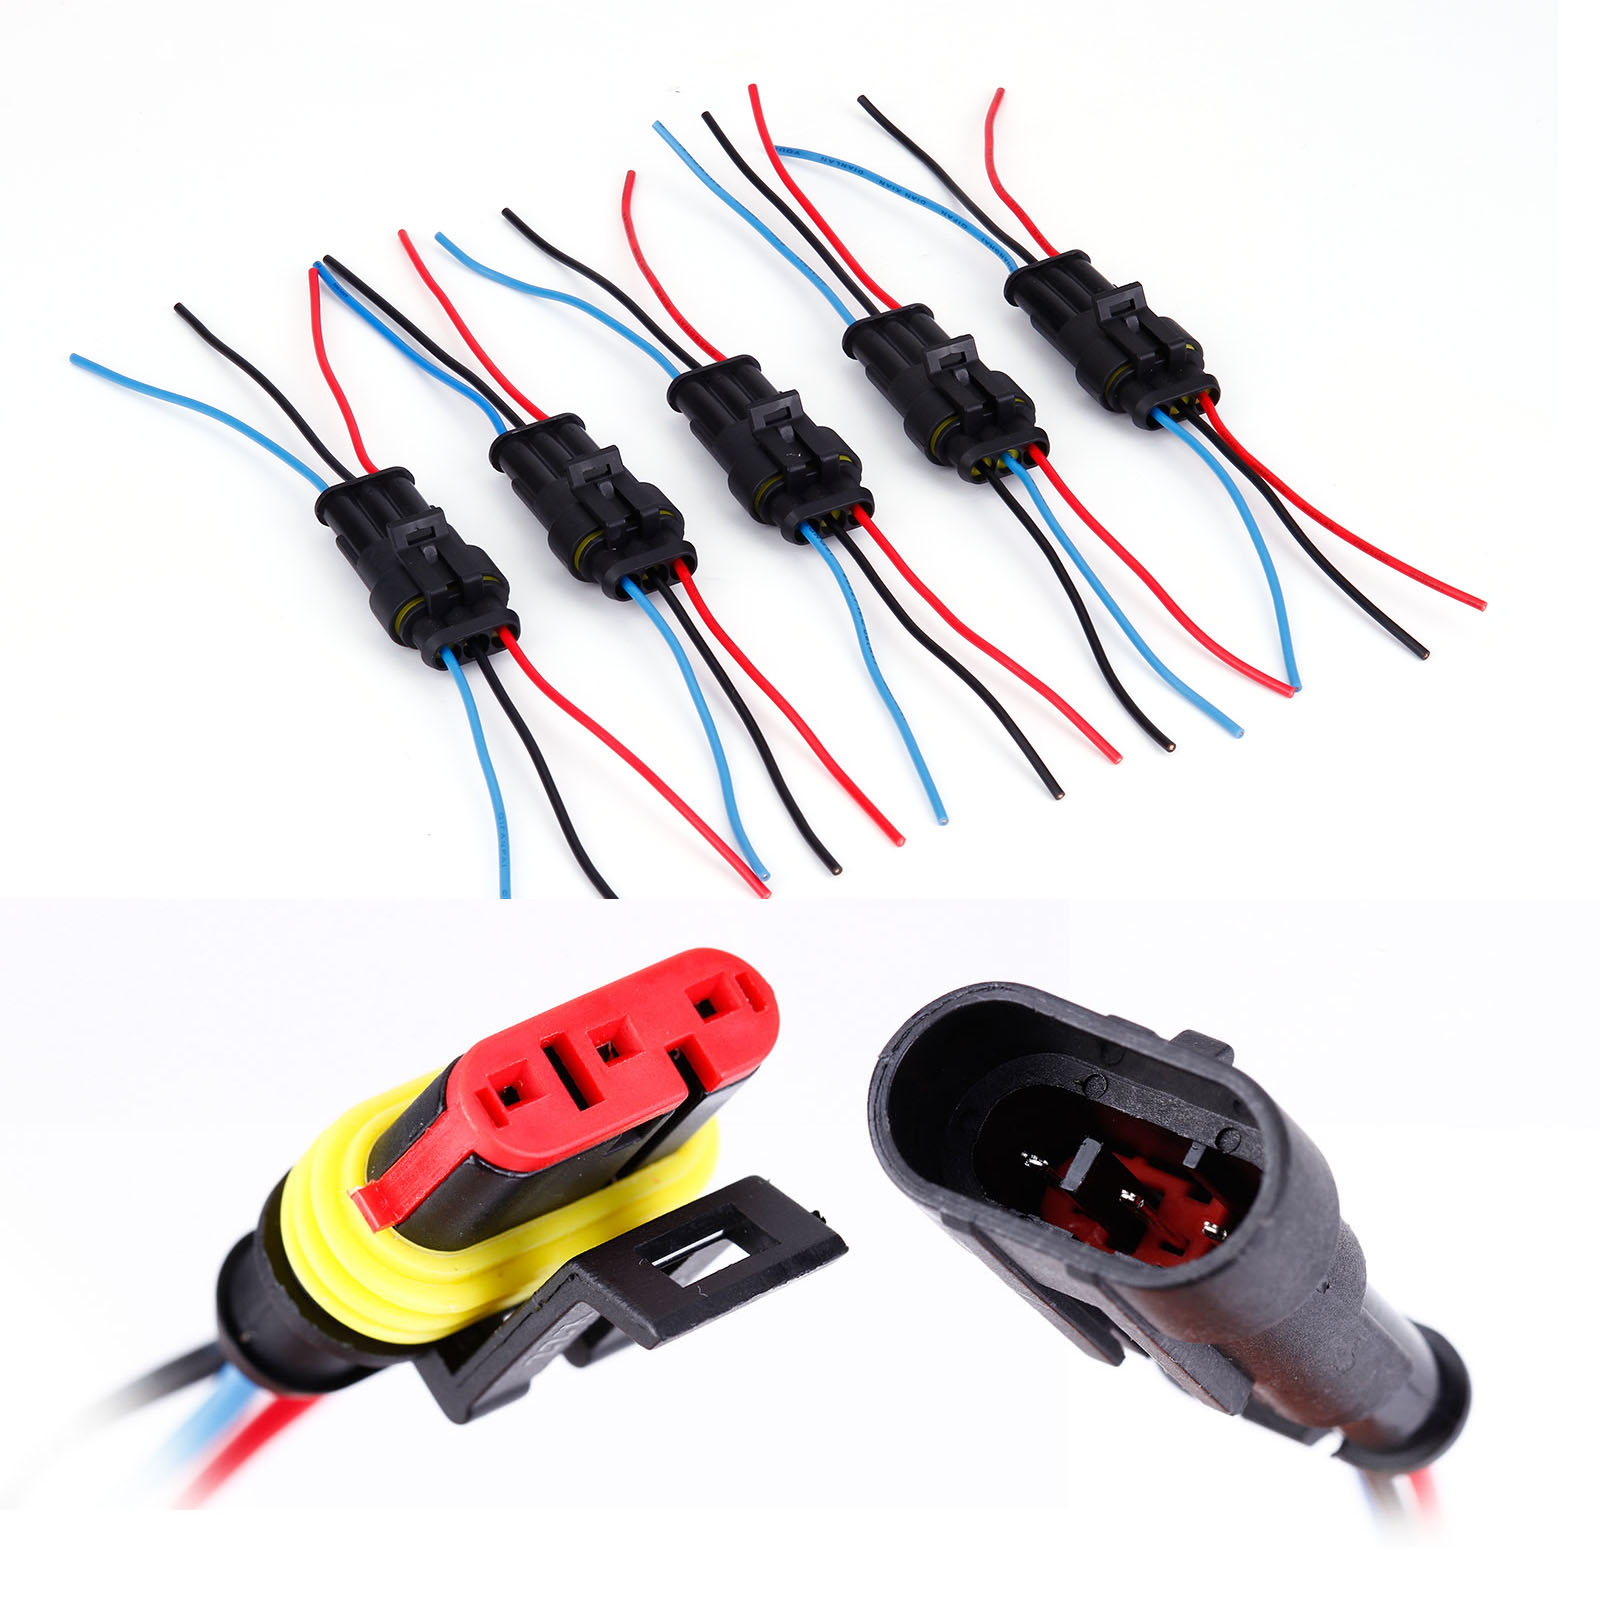 5x 3 Pin Way Waterproof Electrical Connector Plug With Wire Car Motorcycle Wiring Connectors Uk Suitable For Cars Motorbikes Trucks Caravans Boats And Other Marine Vahicles Sealed